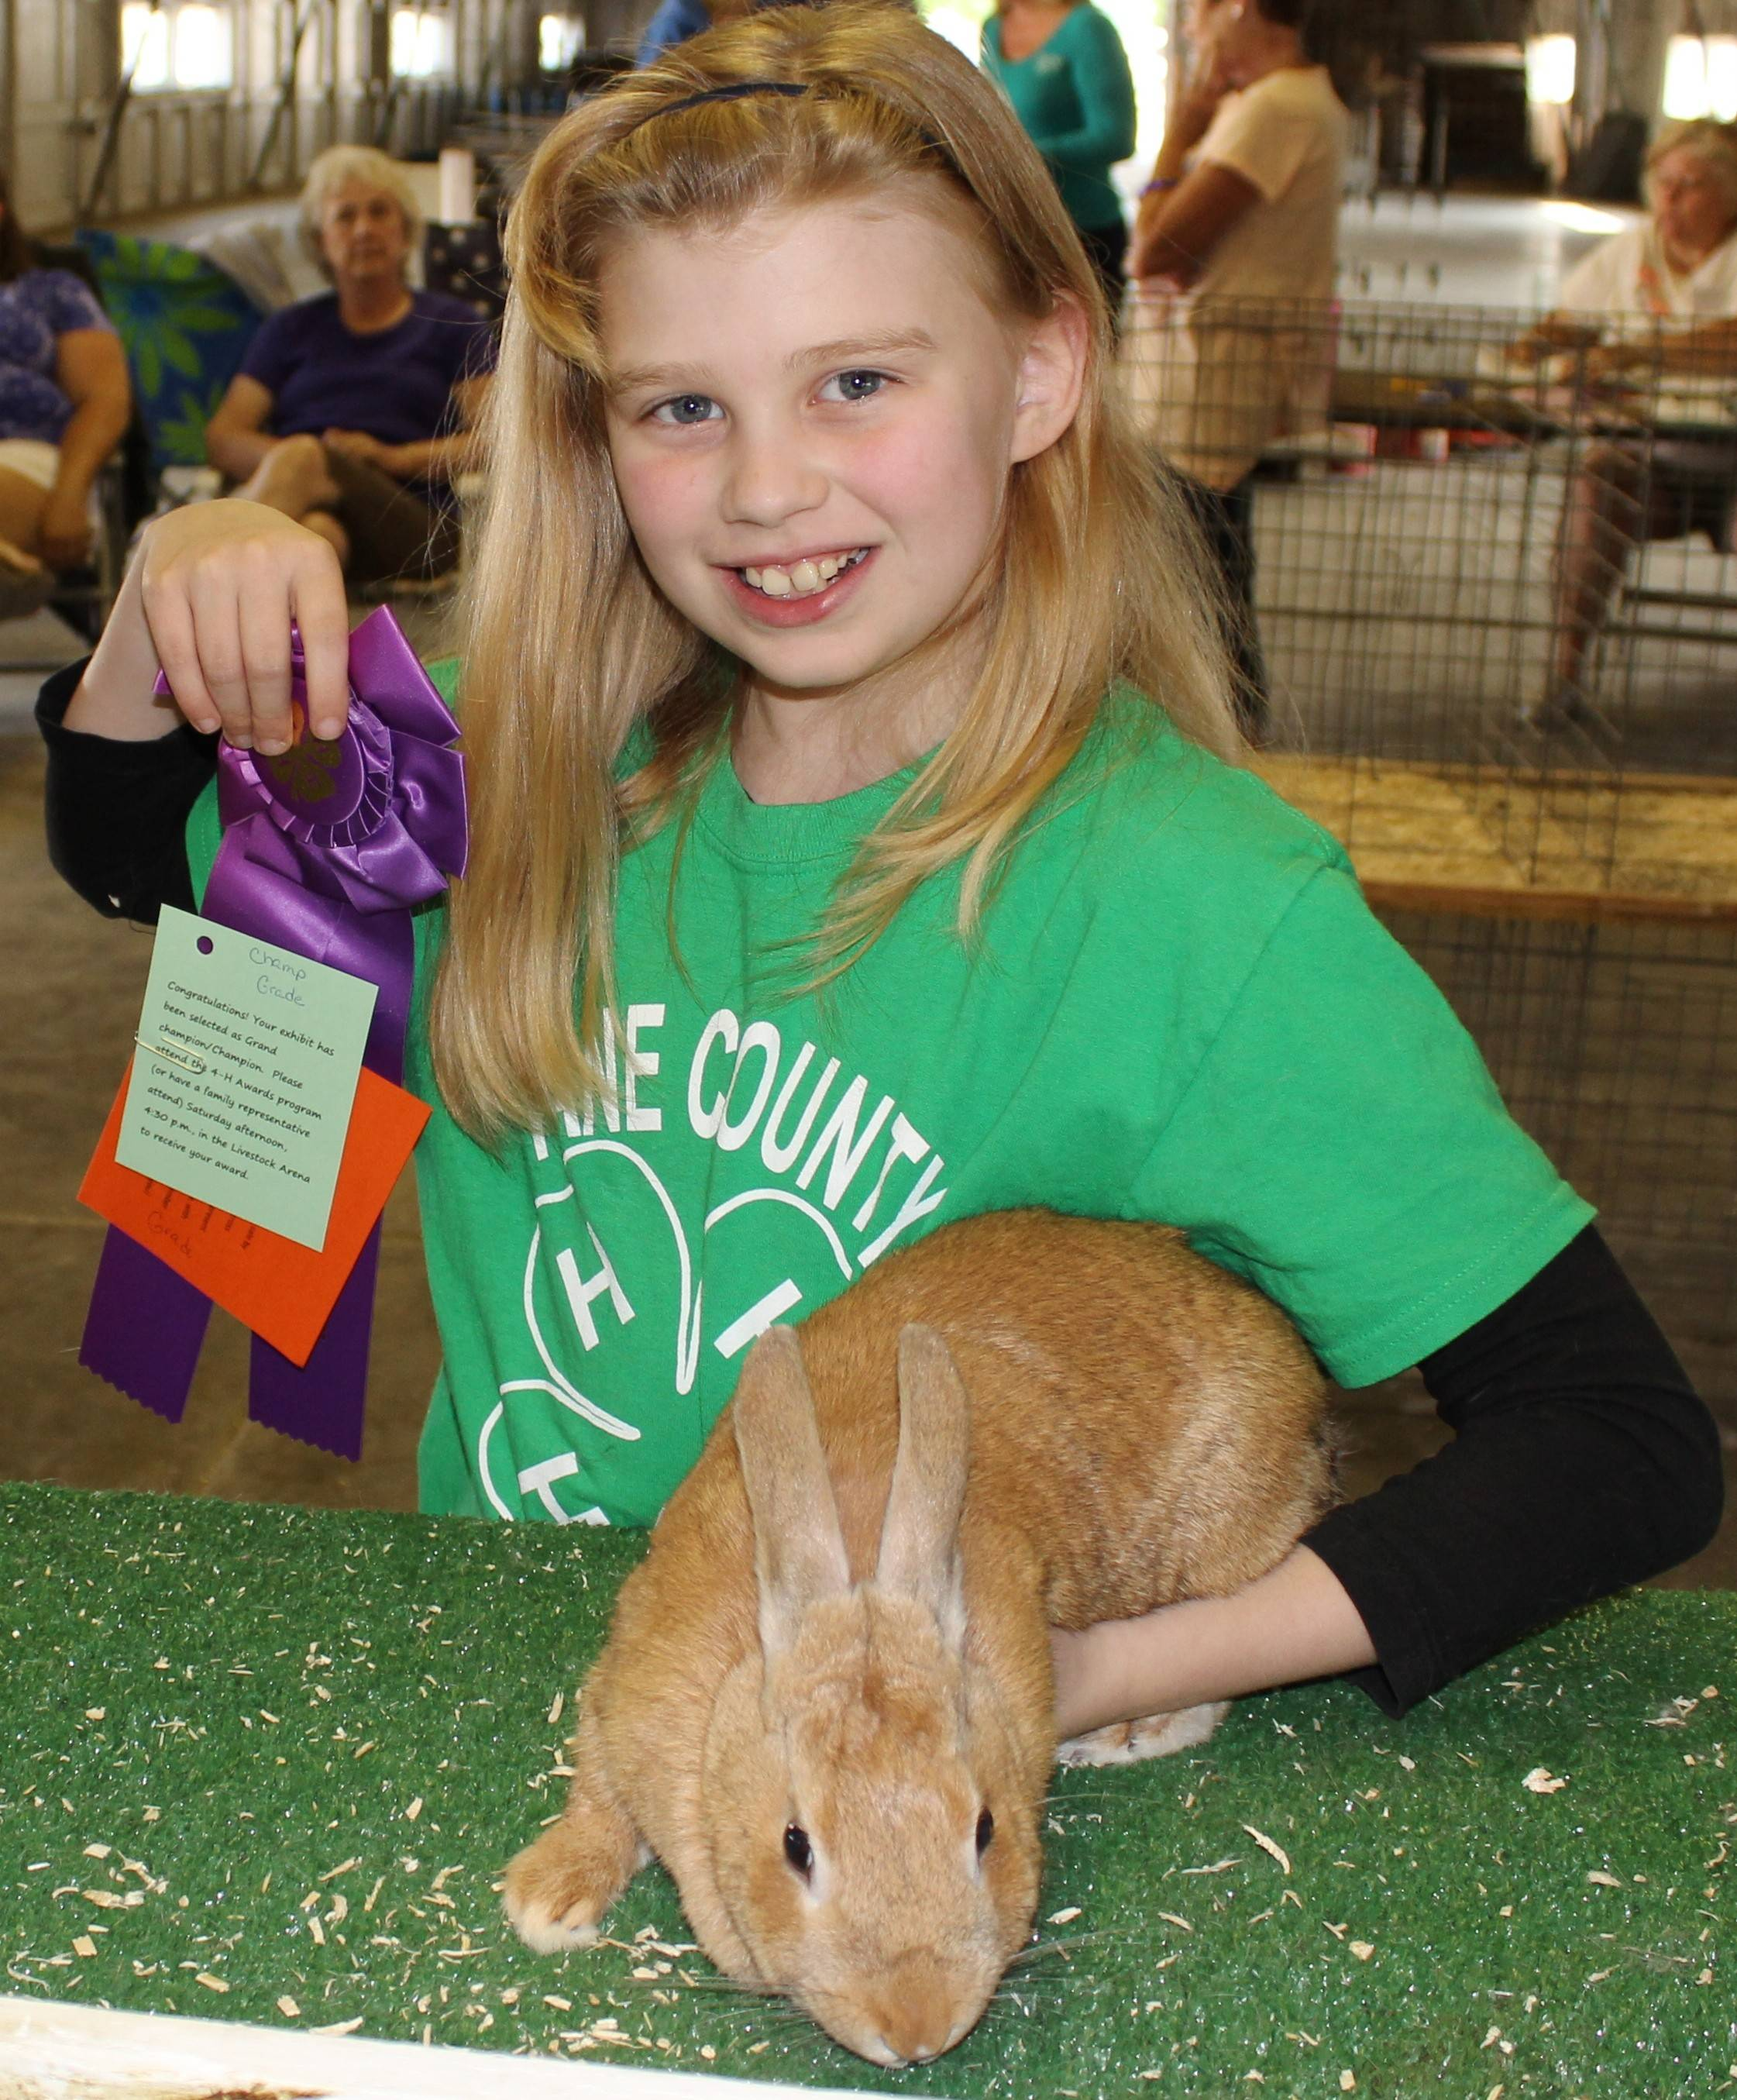 Caitlyn Bjorkman of Kaneville Classics 4-H Club happily receives her Grand Champion Grade Rosette in the 4-H Rabbit Show at the Kane County Fair.